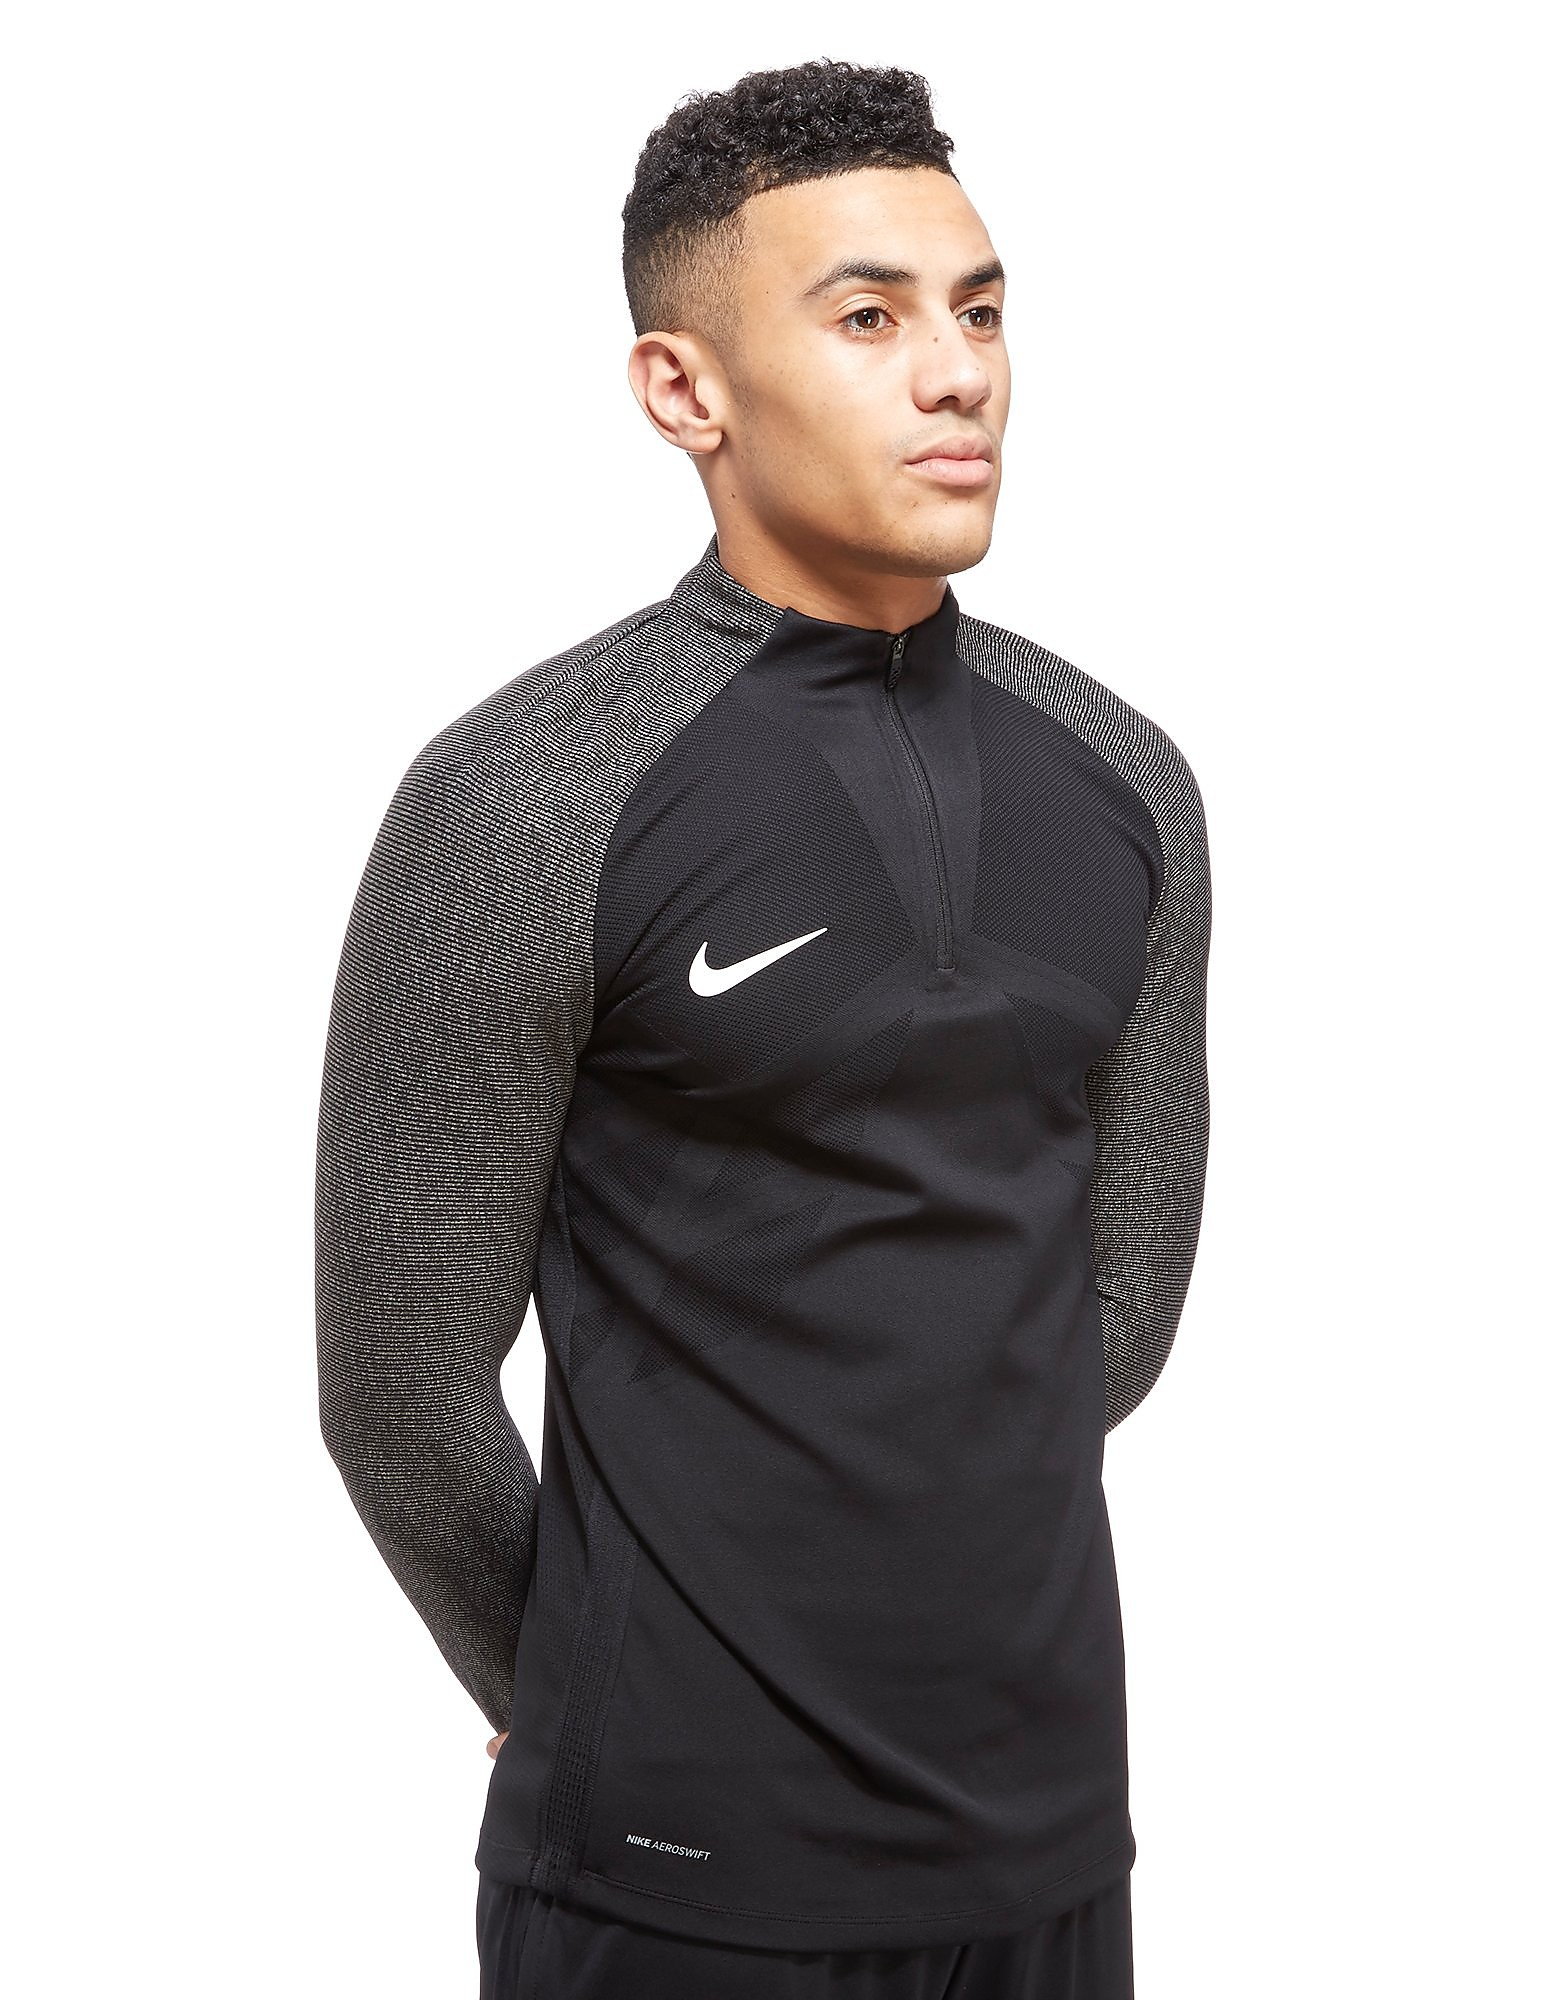 Nike Aeroswift Strike Drill Football Maglia Tecnica